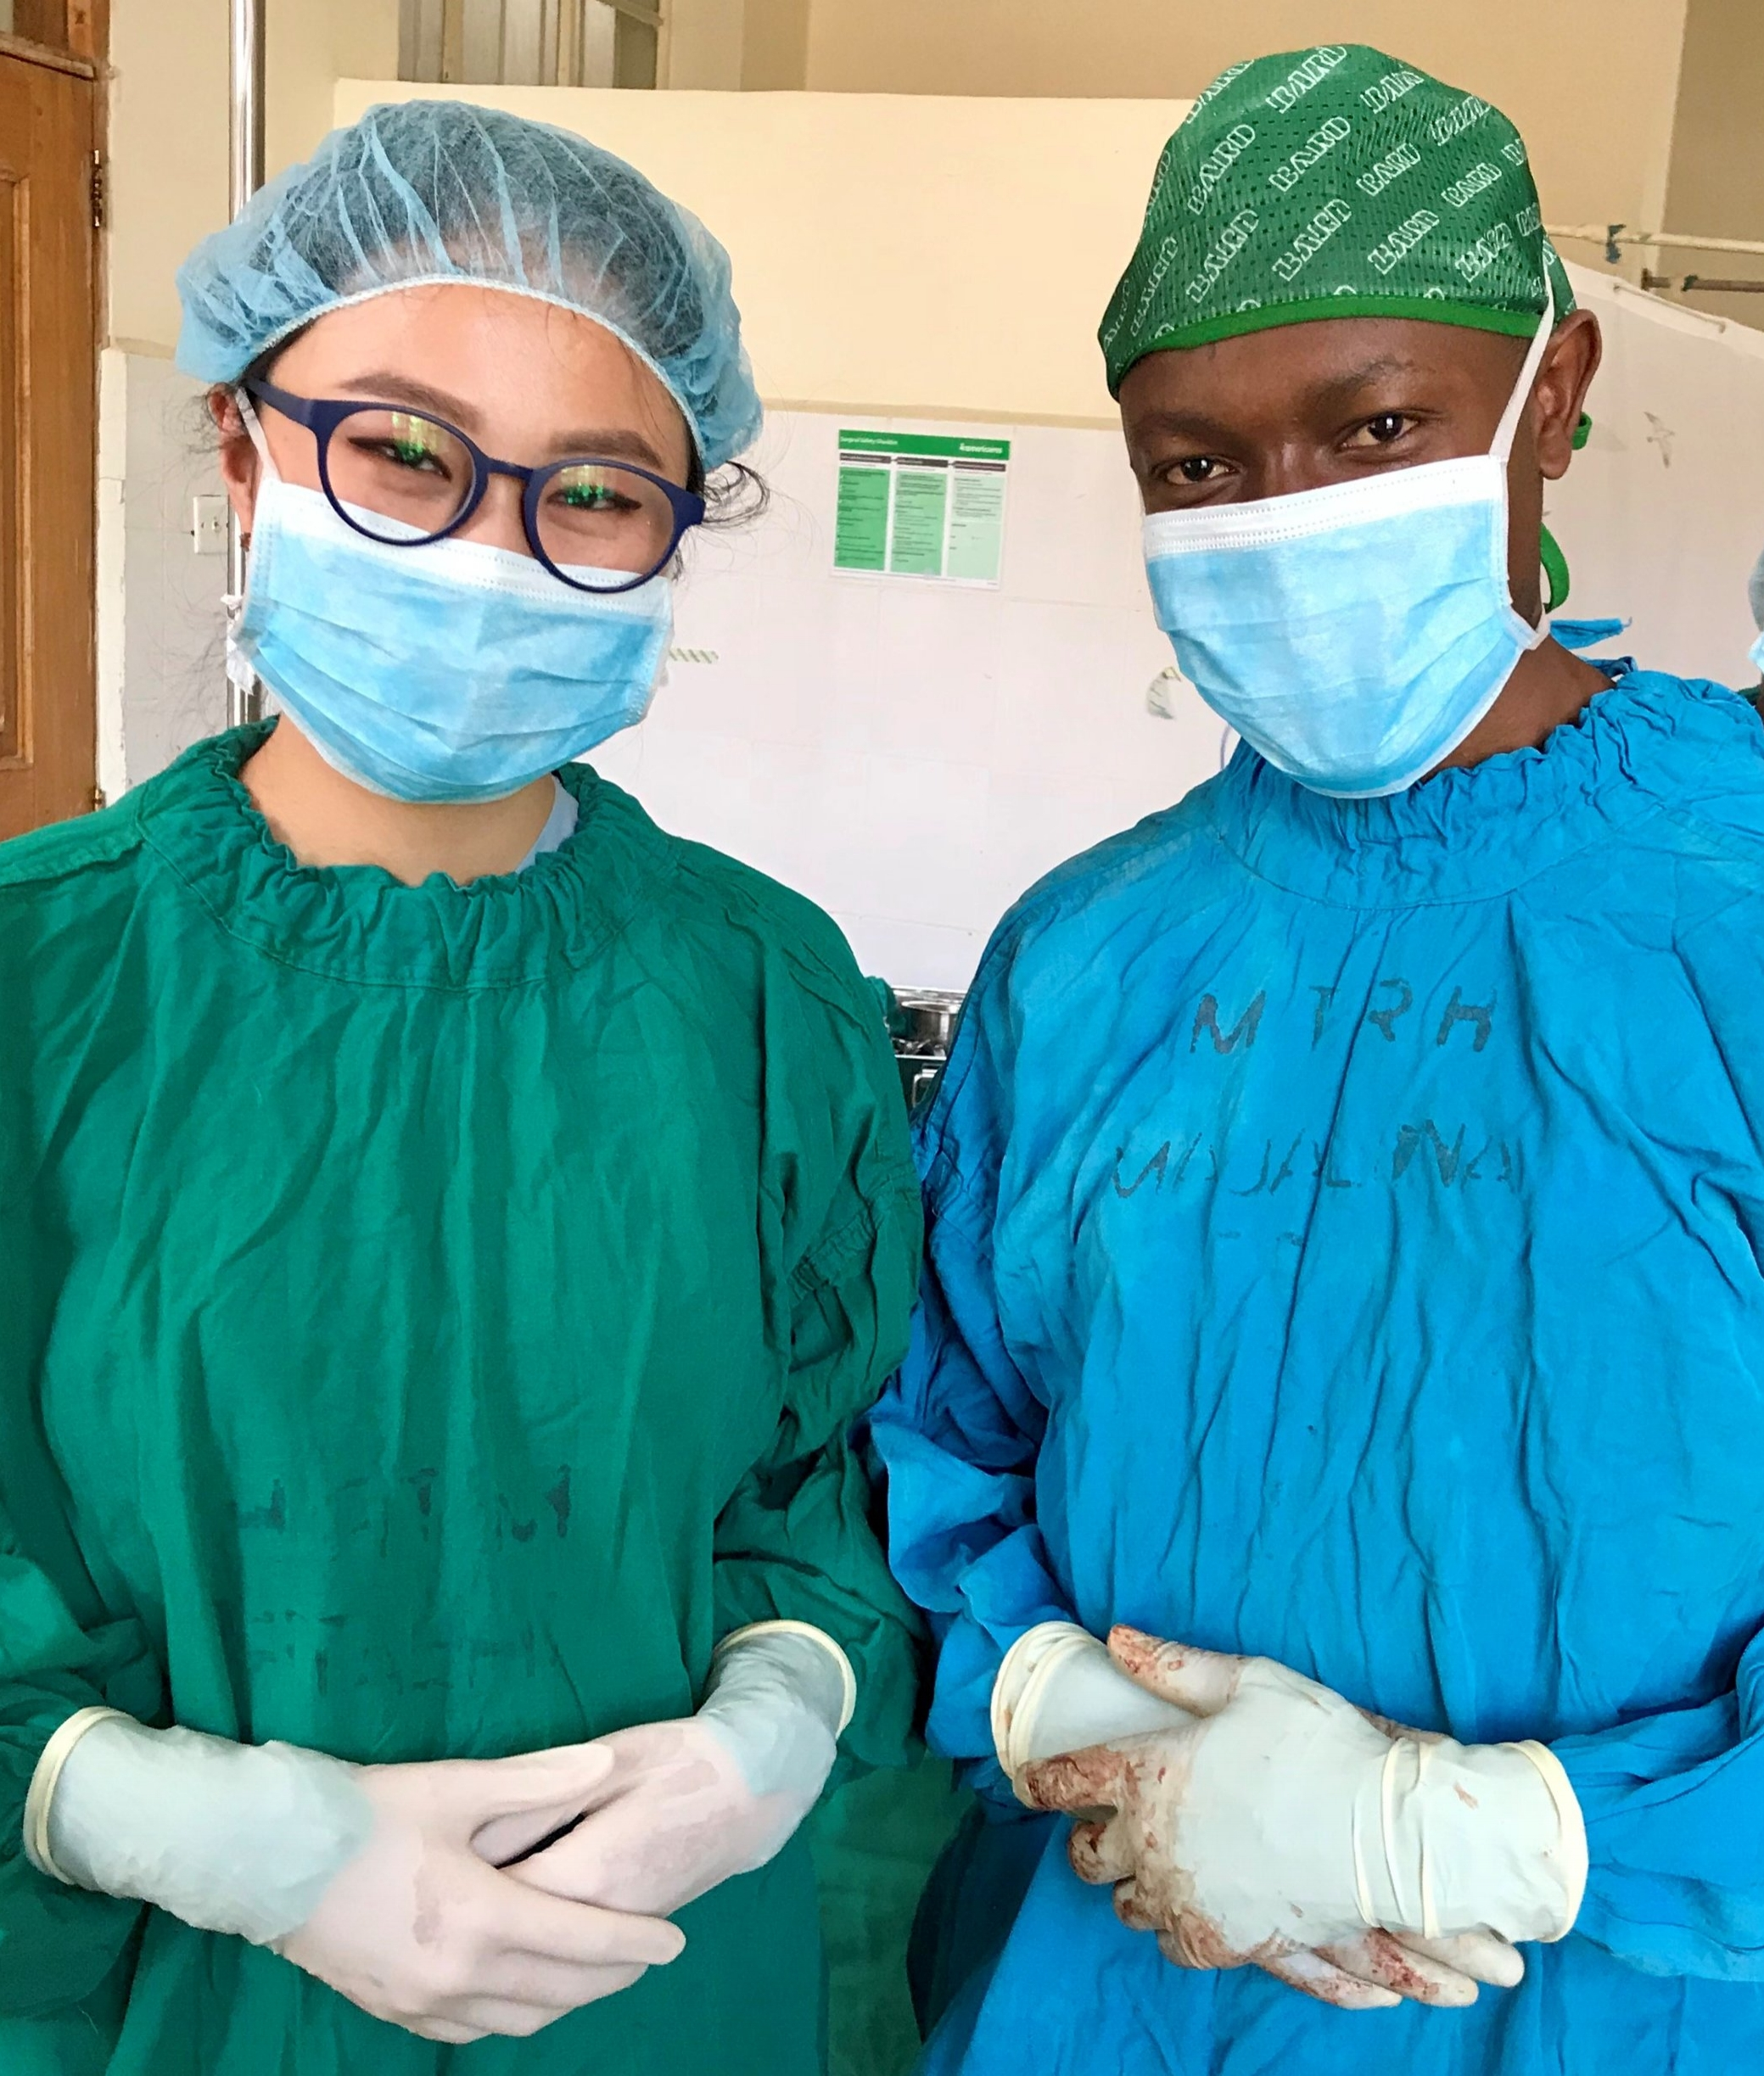 Me, scrubbed in and standing next to Kenyan senior surgical resident Dr. Chacha post-operation.